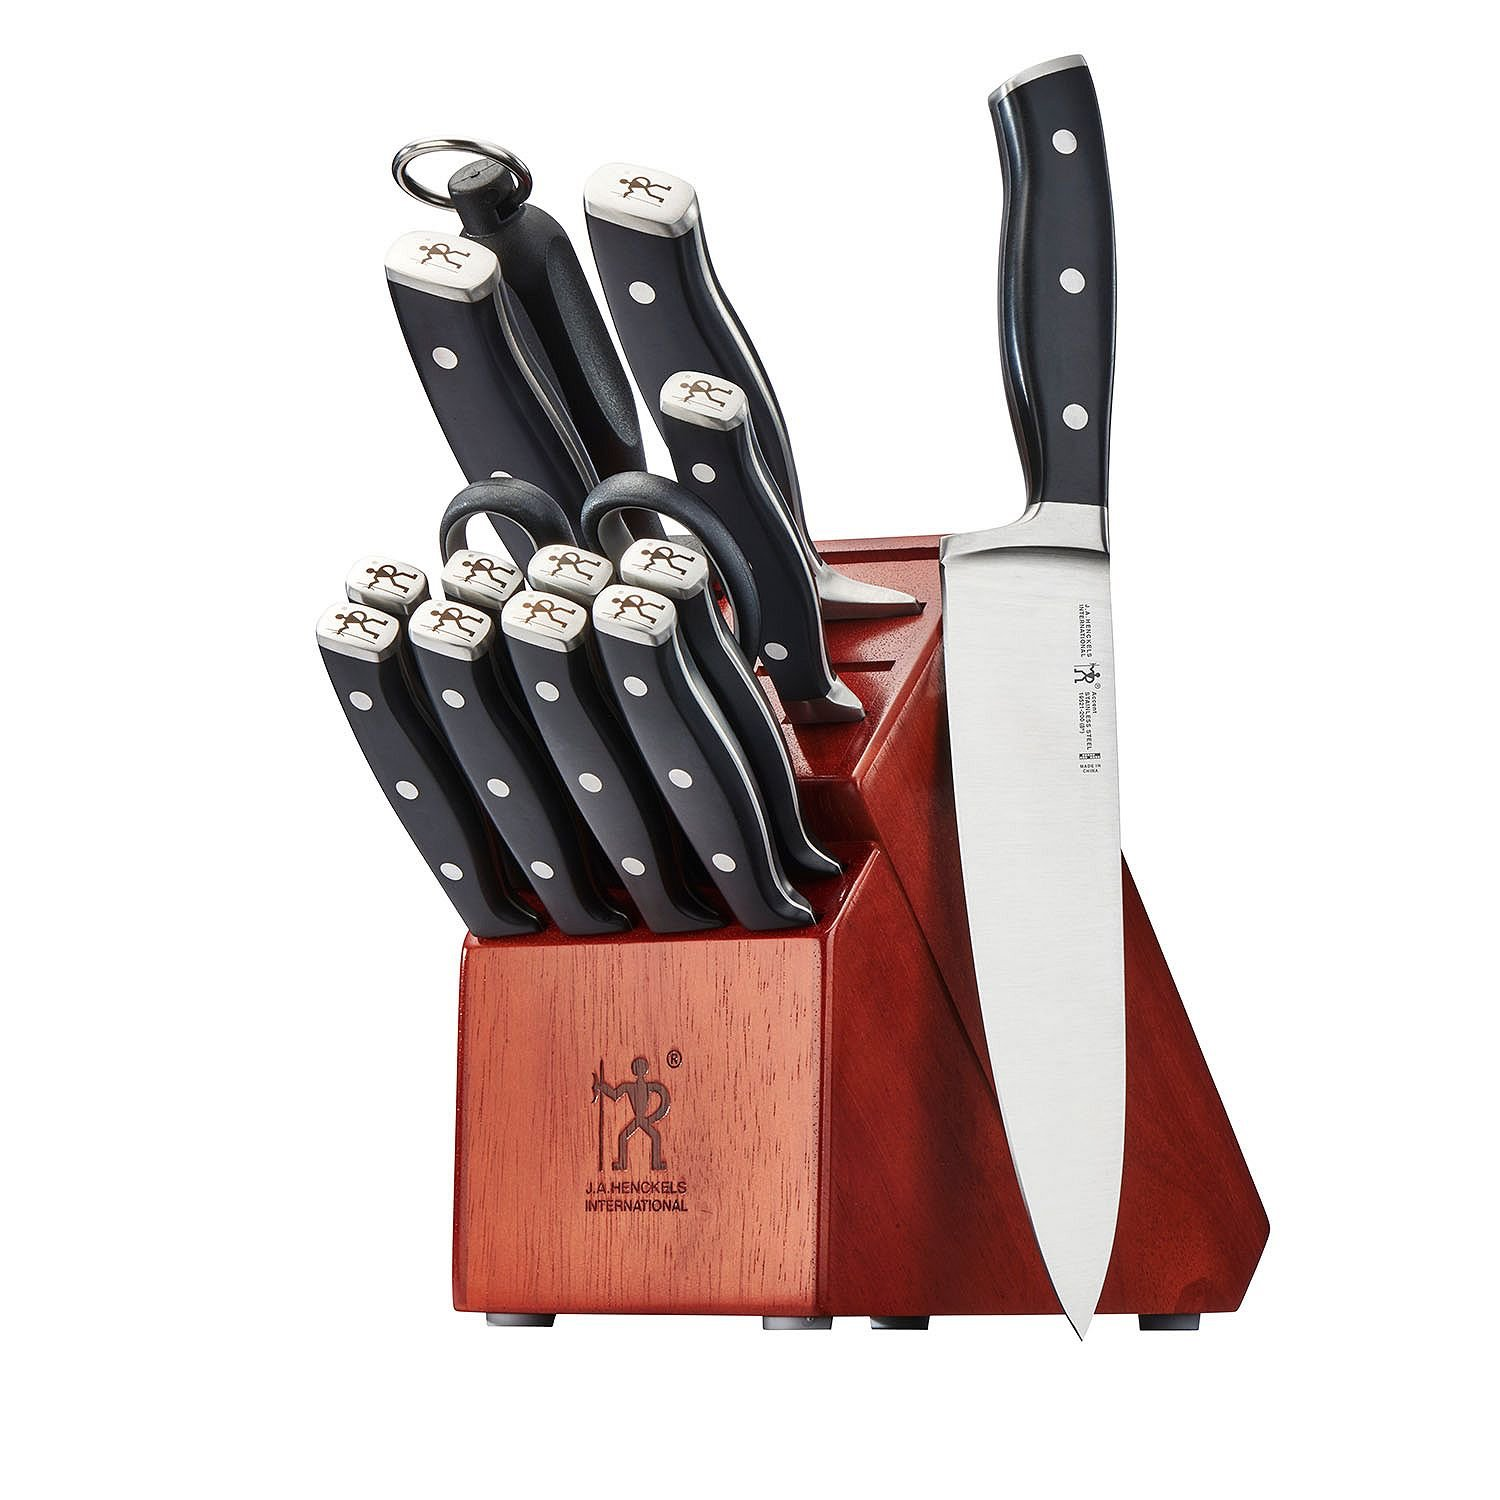 J.A. Henckels International Forged Accent 15-pc Knife Block Set